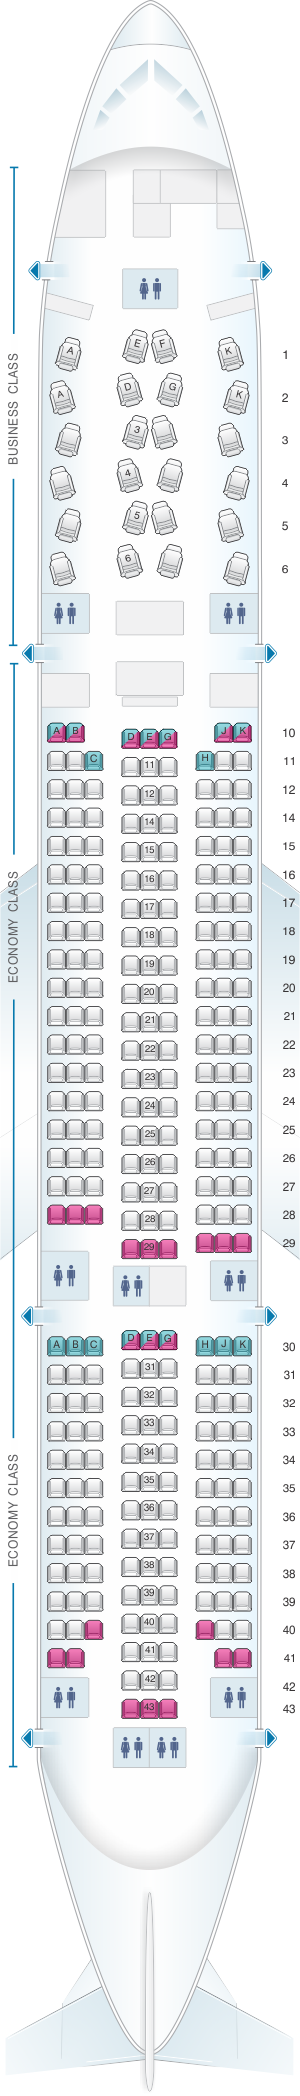 Seat map for Asiana Airlines Boeing B777 200ER 302PAX